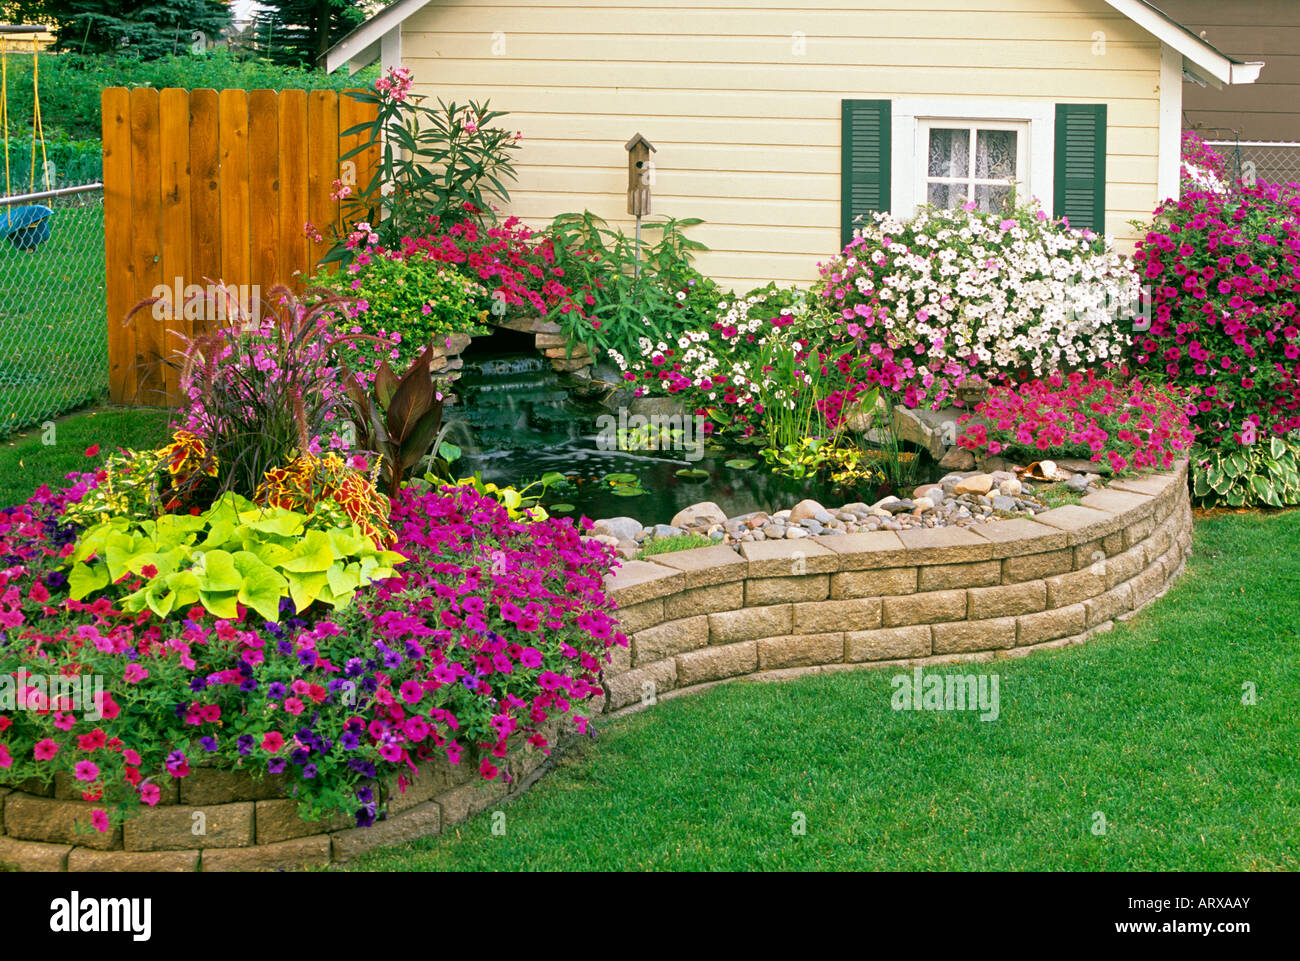 Wonderful MINNESOTA GARDEN WITH POTTING HOUSE, WATERFALL AND POND. WAVE PETUNIAS,  SWEET POTATO VINE, OLEANDER, CANNA, COLEUS AND HYACINTH